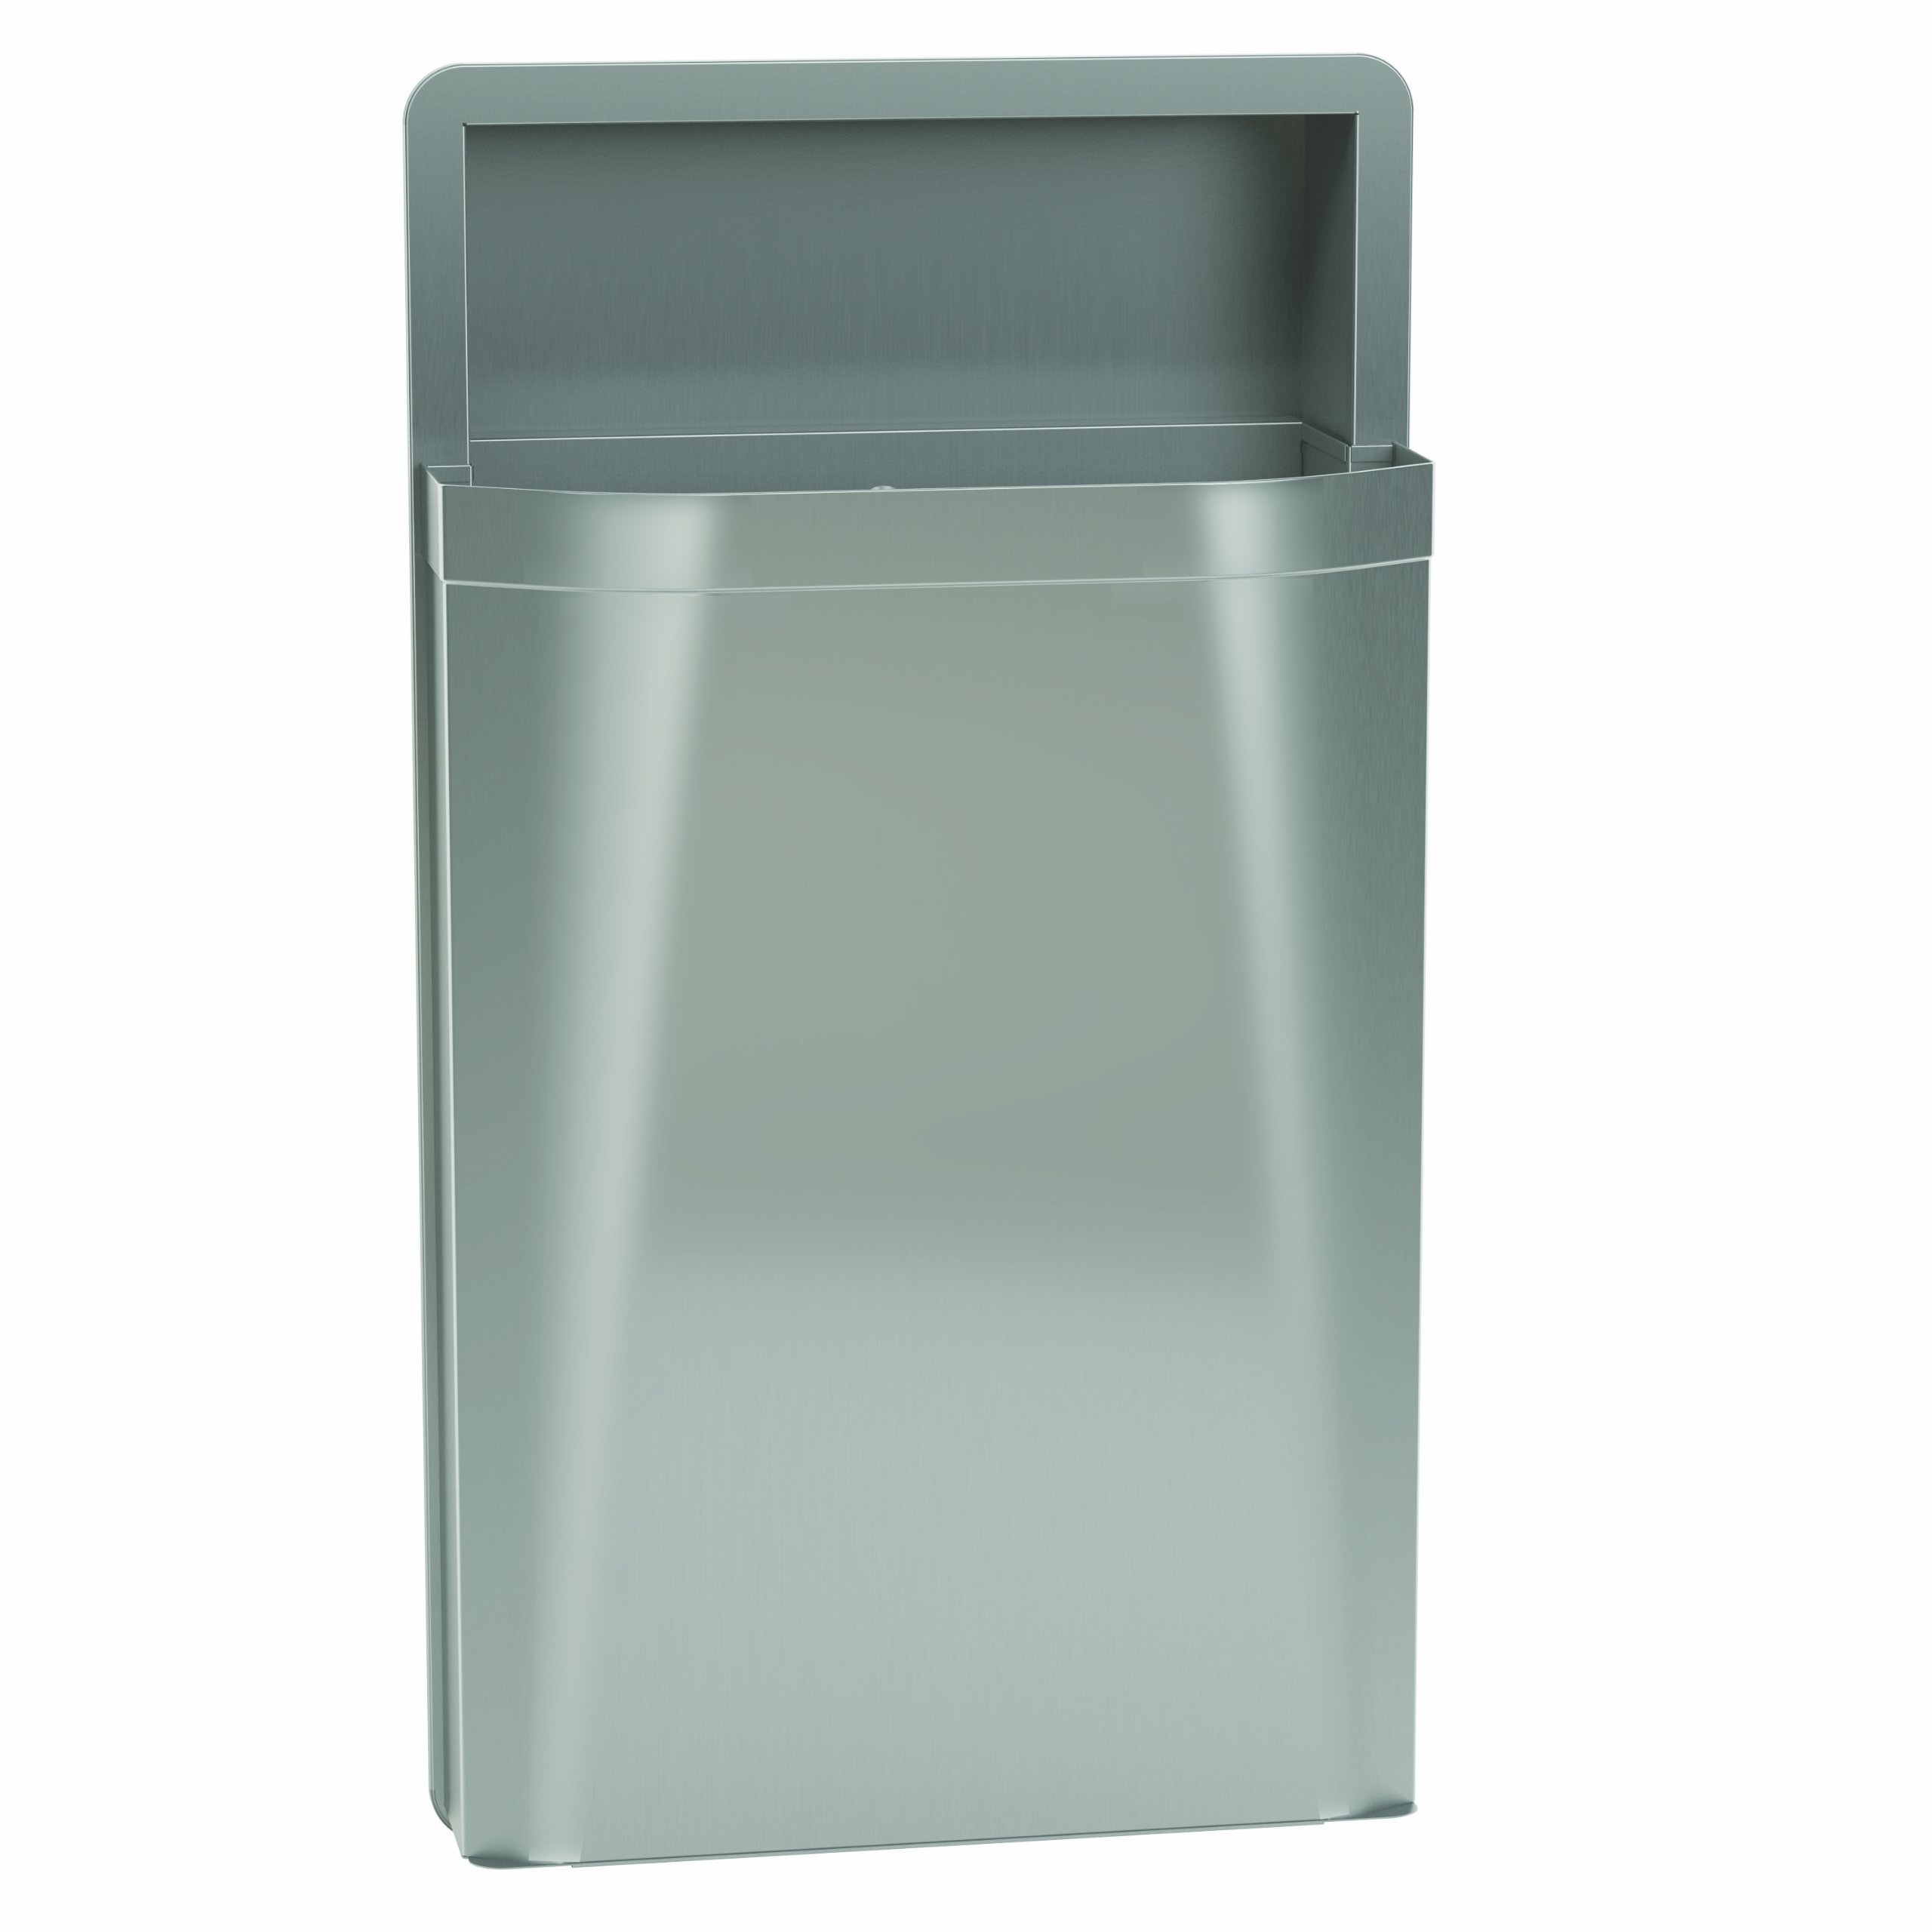 Bradley 3A05-100000 Diplomat Stainless Steel Semi-Recessed Mounted Waste Receptacle, 12 Gallon Capacity, 17-1/8'' Width x 30-5/8'' Height x 8-11/16'' Depth